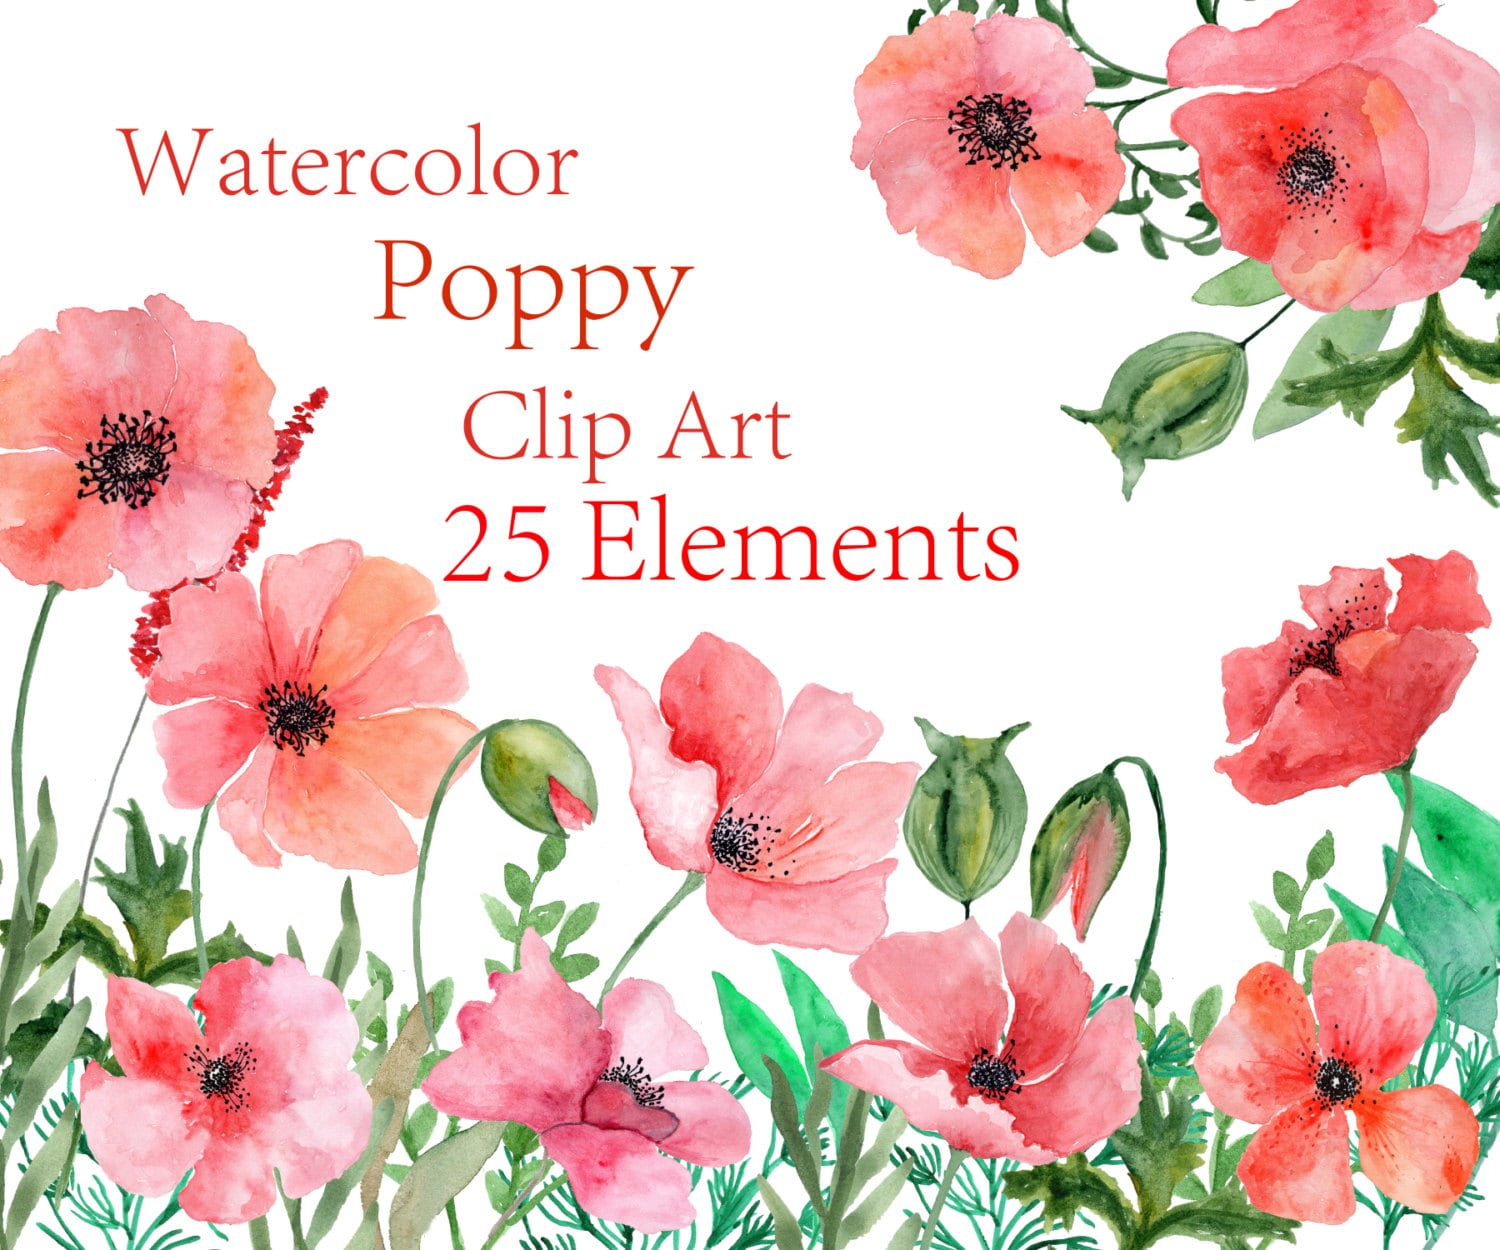 Watercolor Poppy Flowers Clipart Watercolor Floral Clipart Red Etsy